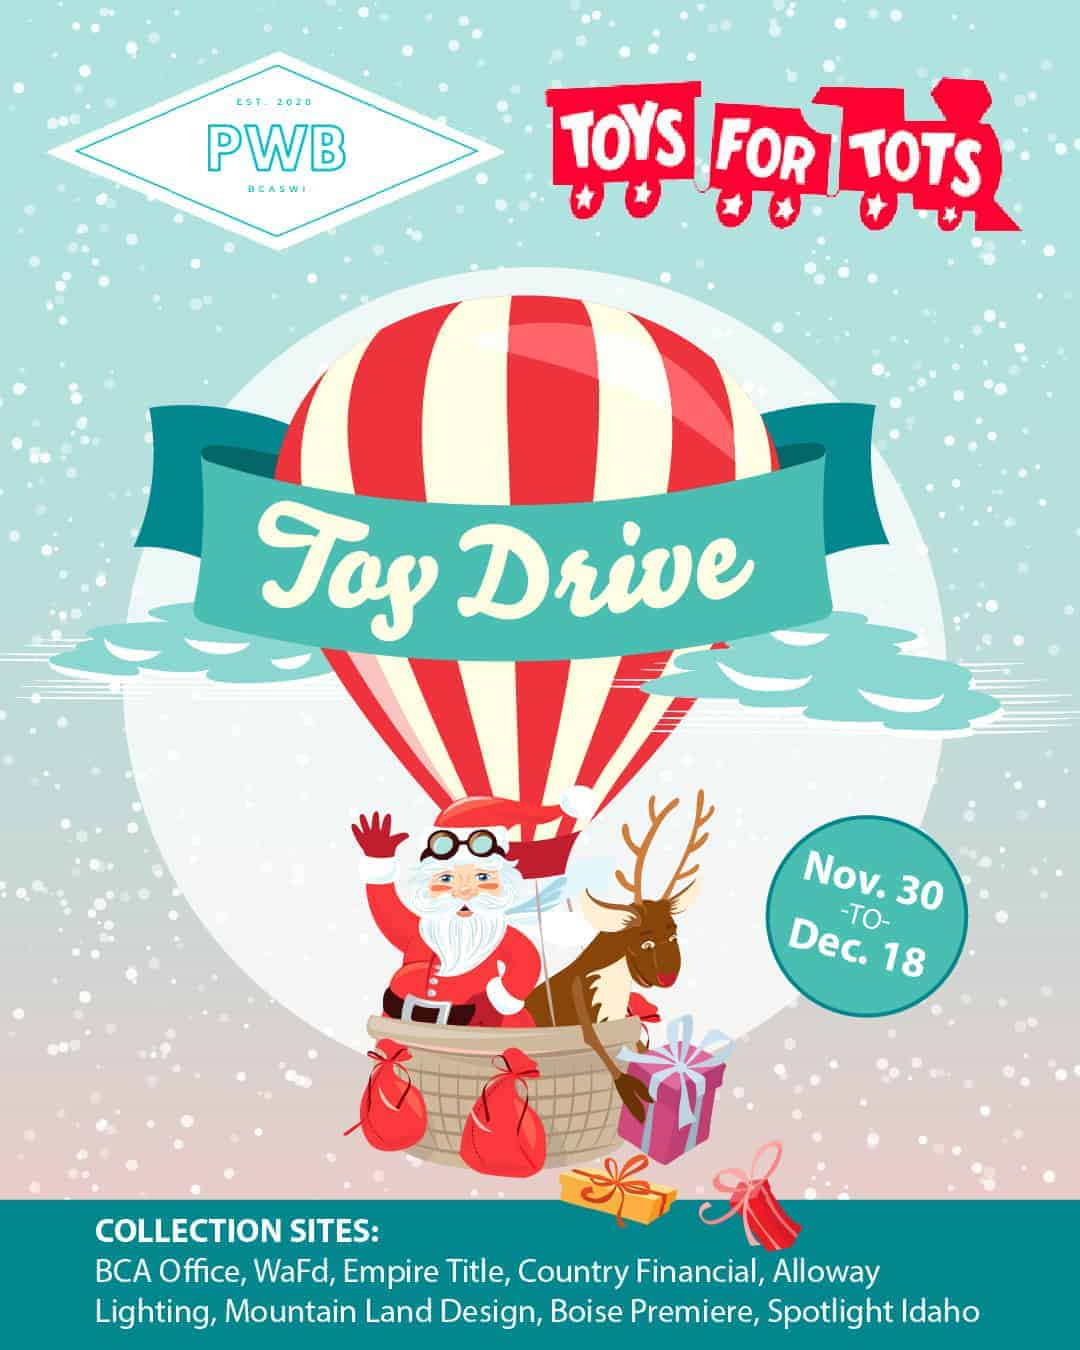 Toys for Tots: Toy Drive